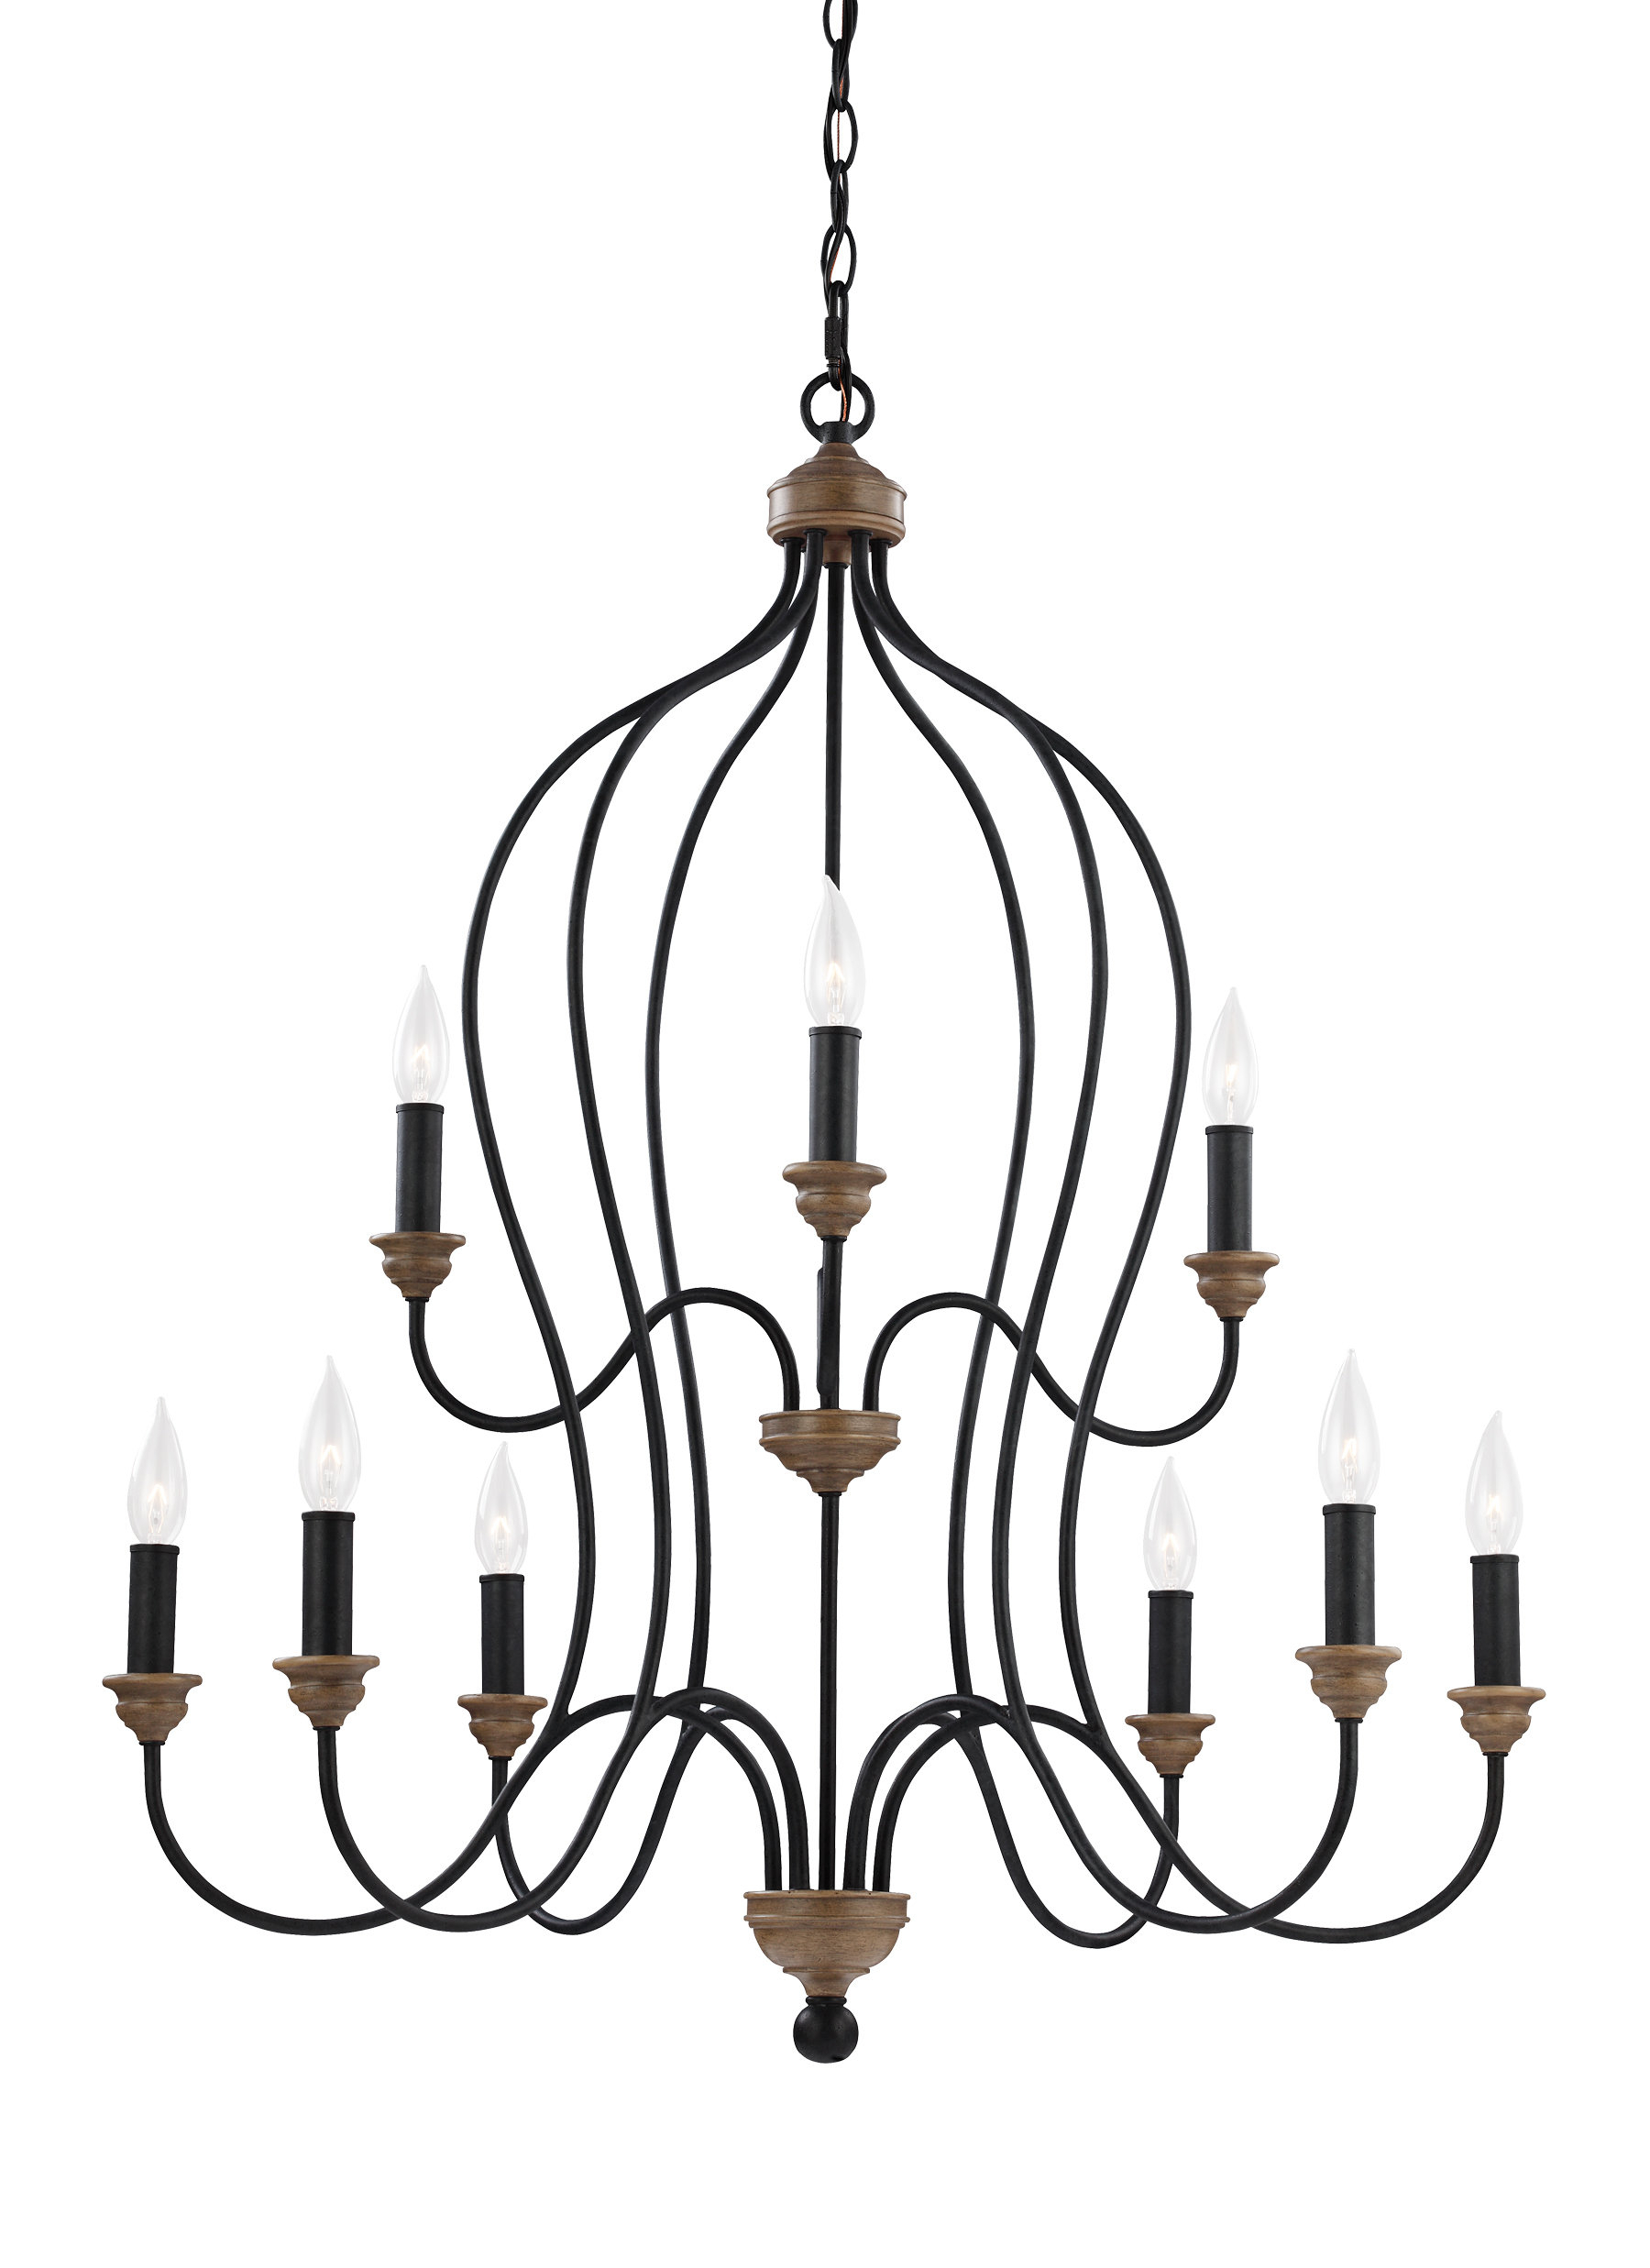 Watford 9 Light Candle Style Chandeliers For Most Current Sundberg 9 Light Candle Style Chandelier (Gallery 5 of 20)